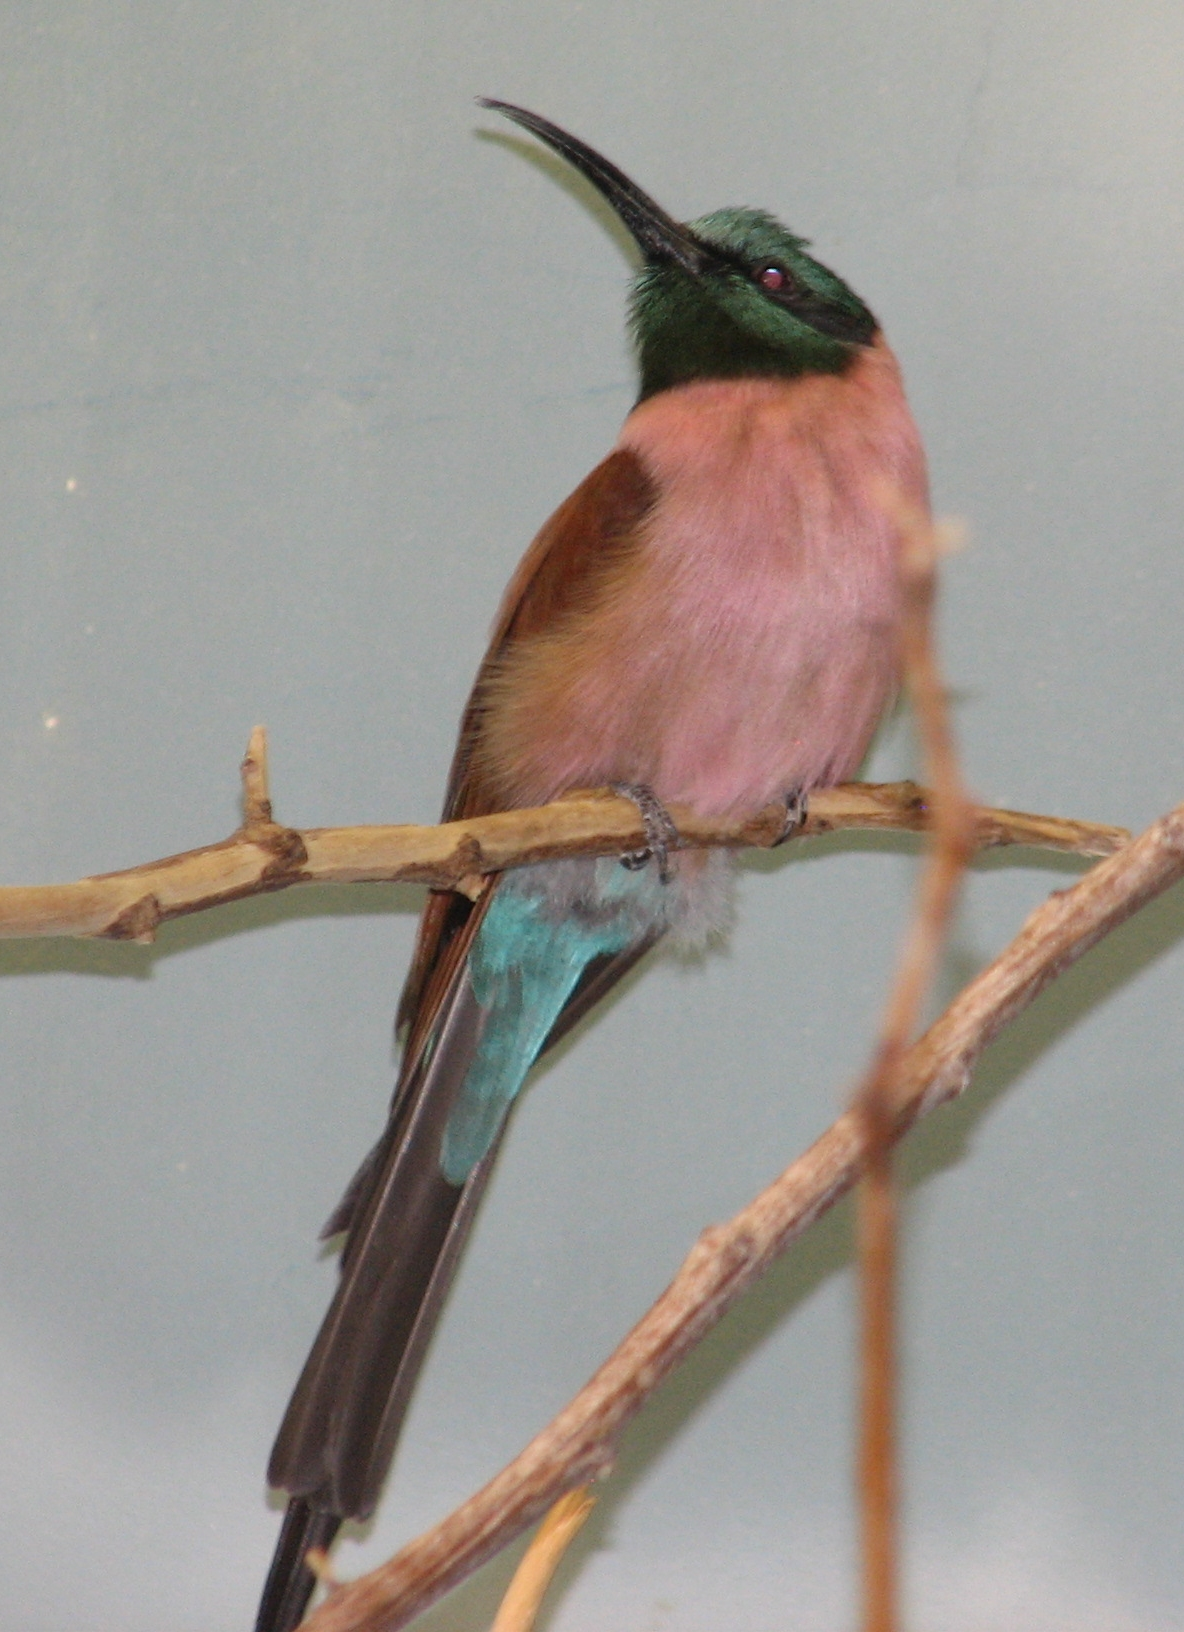 https://upload.wikimedia.org/wikipedia/commons/f/f5/Northern_Carmine_Bee_Eater.jpg